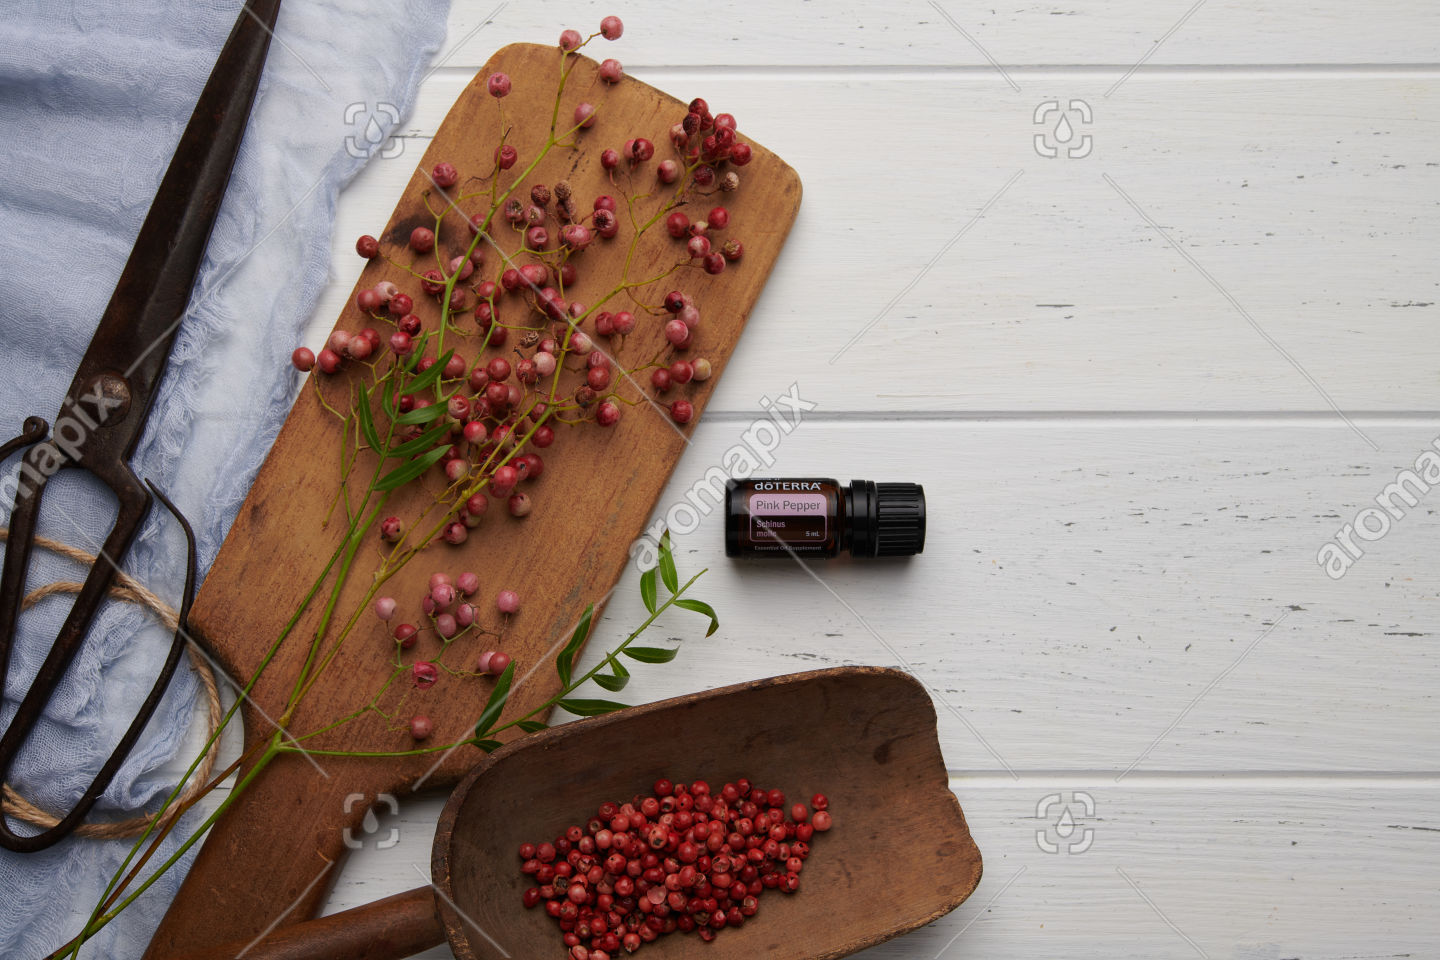 doTERRA Pink Pepper and pink peppercorns with utensils on white background